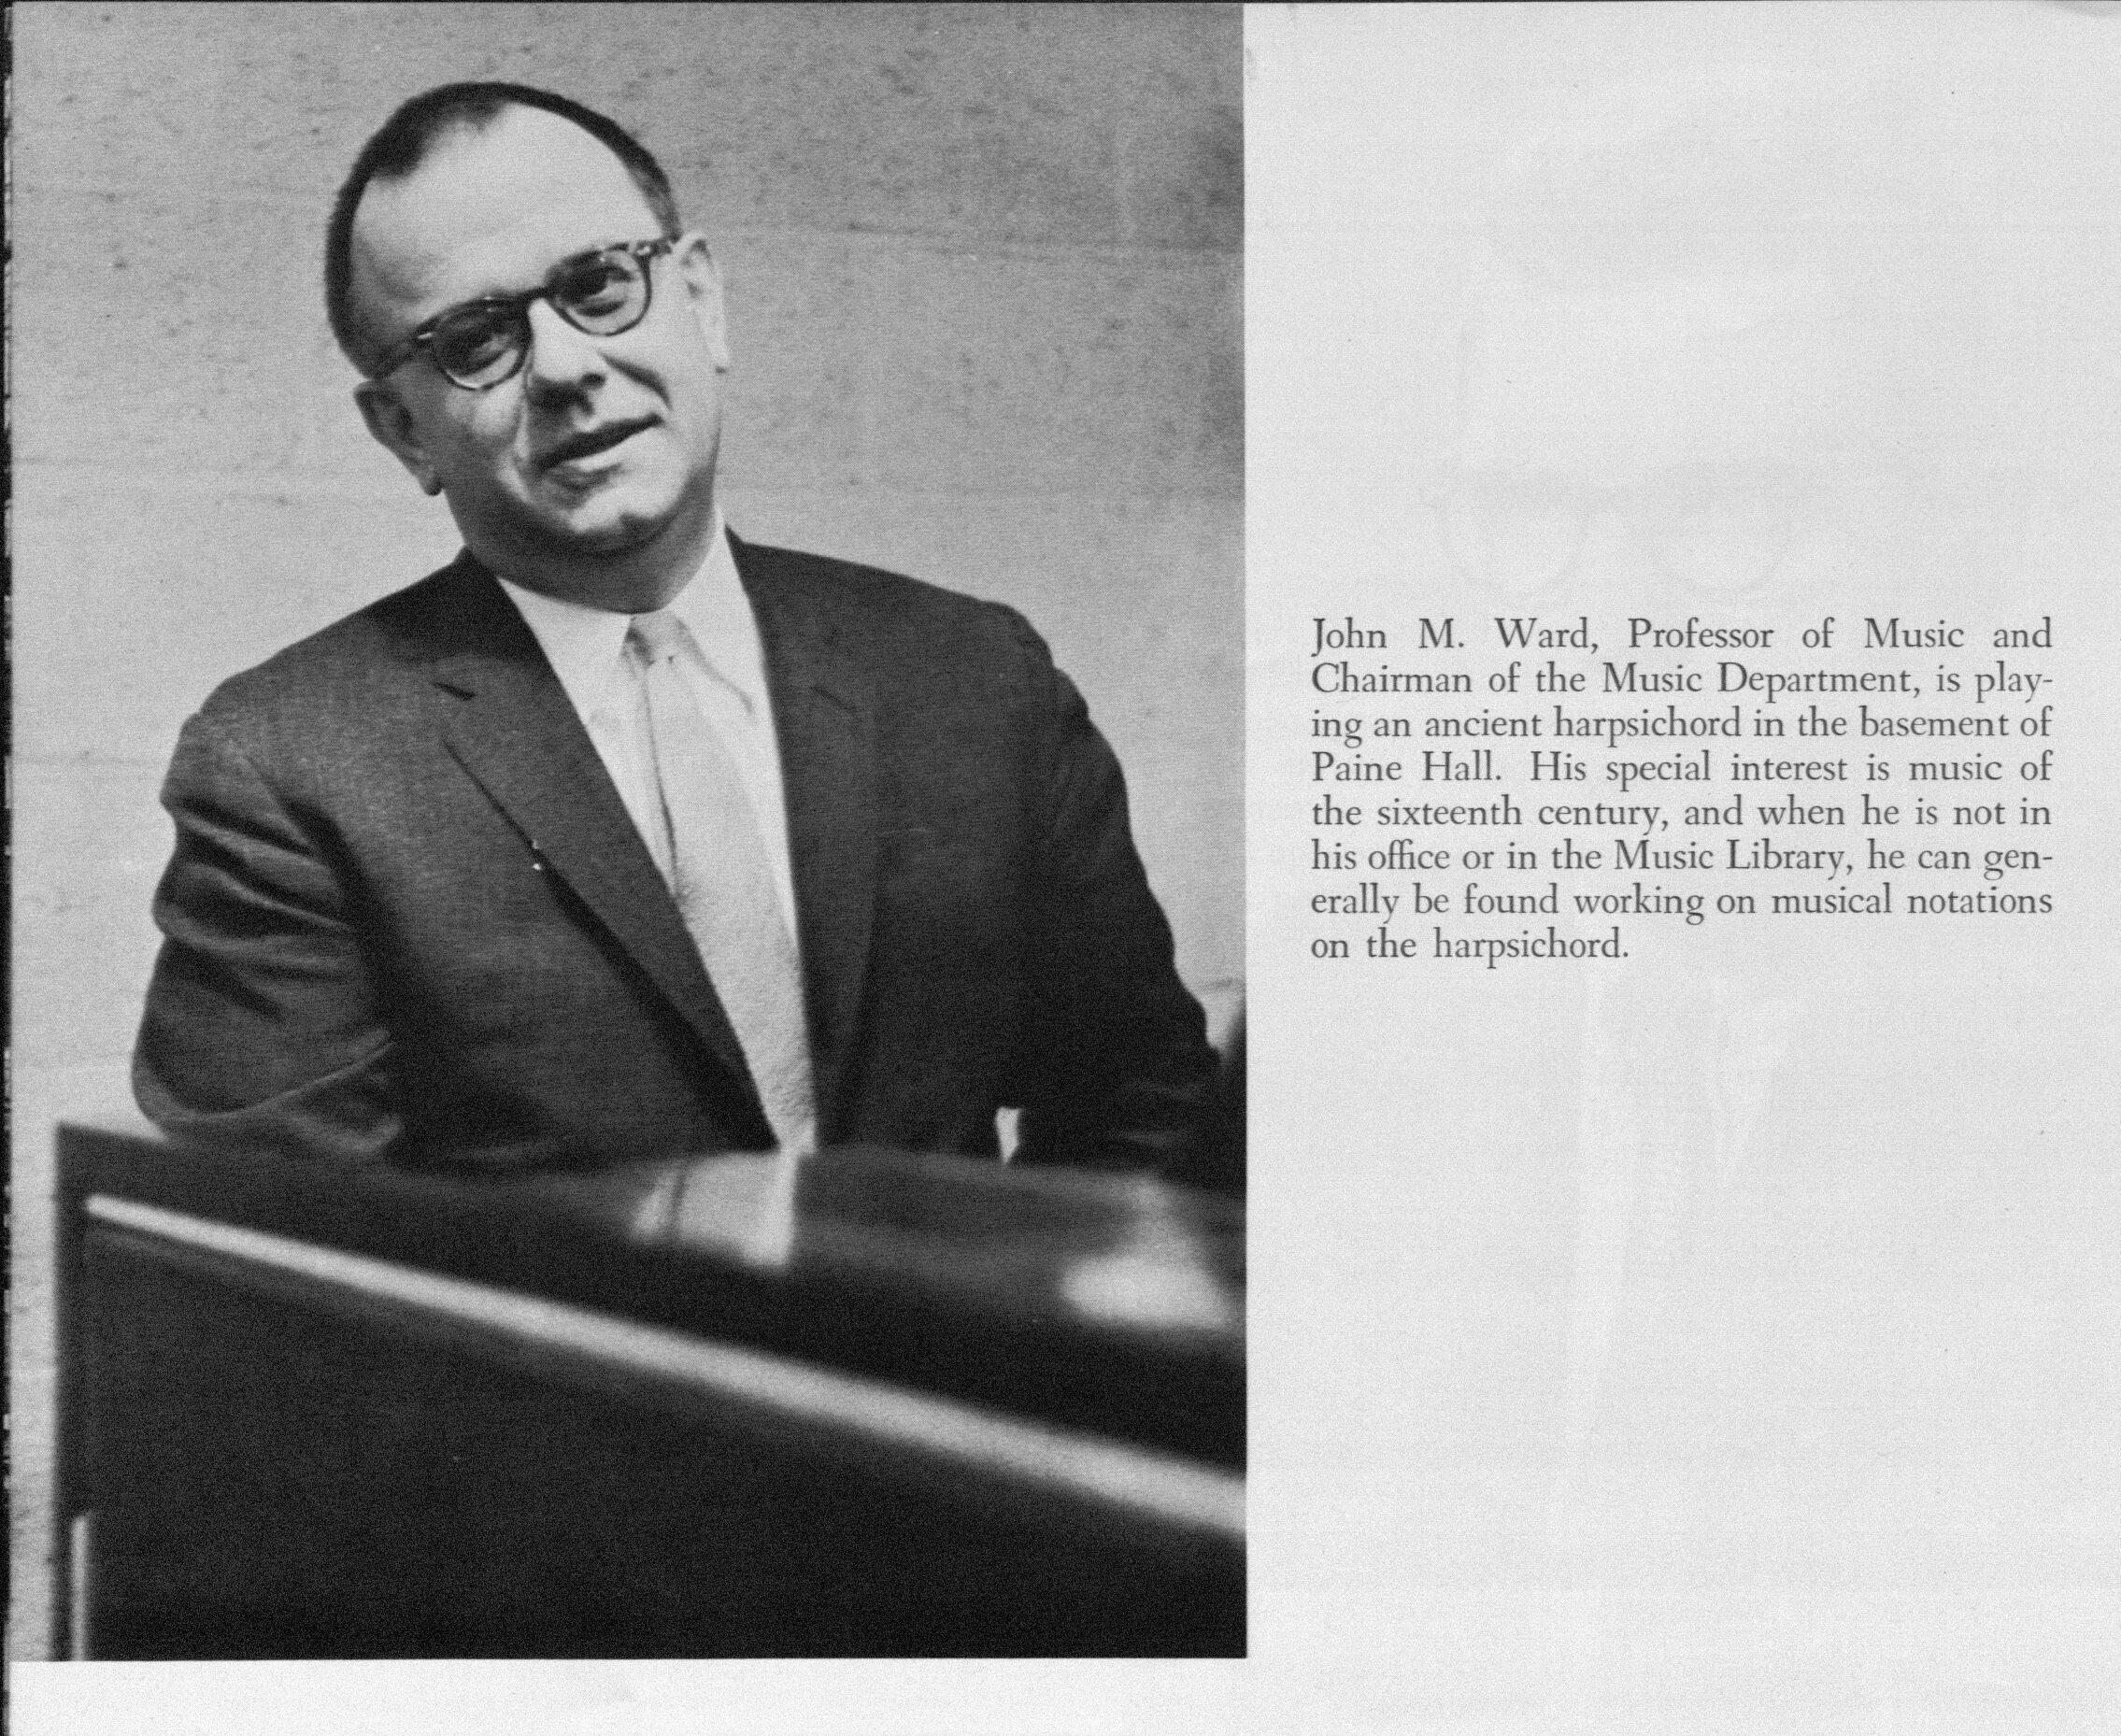 Ward in 1959. Throughout his teaching years, Ward played the piano, often in 4-hand arrangements with students.